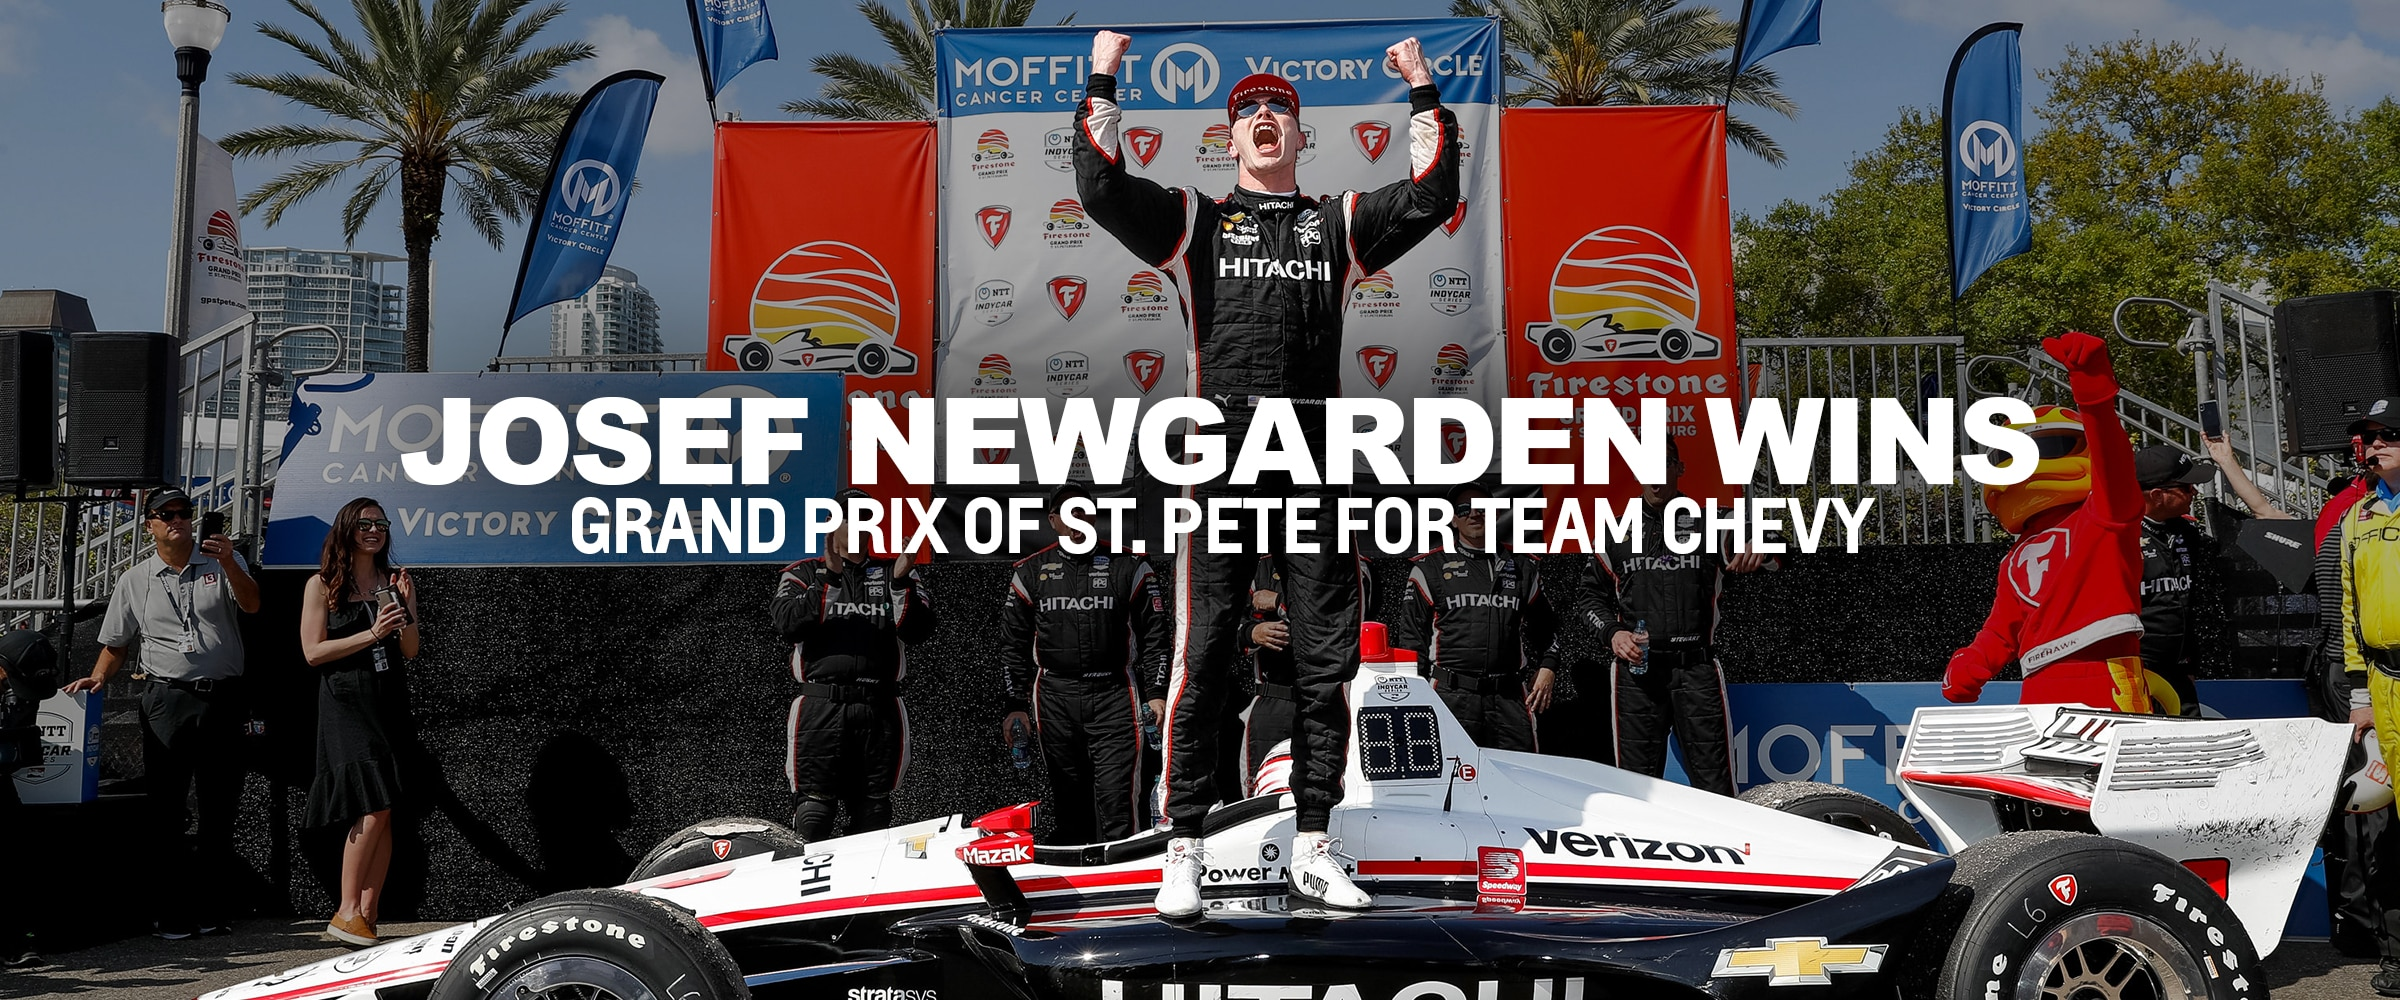 Racing, Motorsports, Chevy, Chevrolet, Chevrolet Performance, IndyCar, St. Petersburg, Grand Prix of St. Petersburg, Team Chevy, NTT IndyCar Series, Team Penske, Josef Newgarden